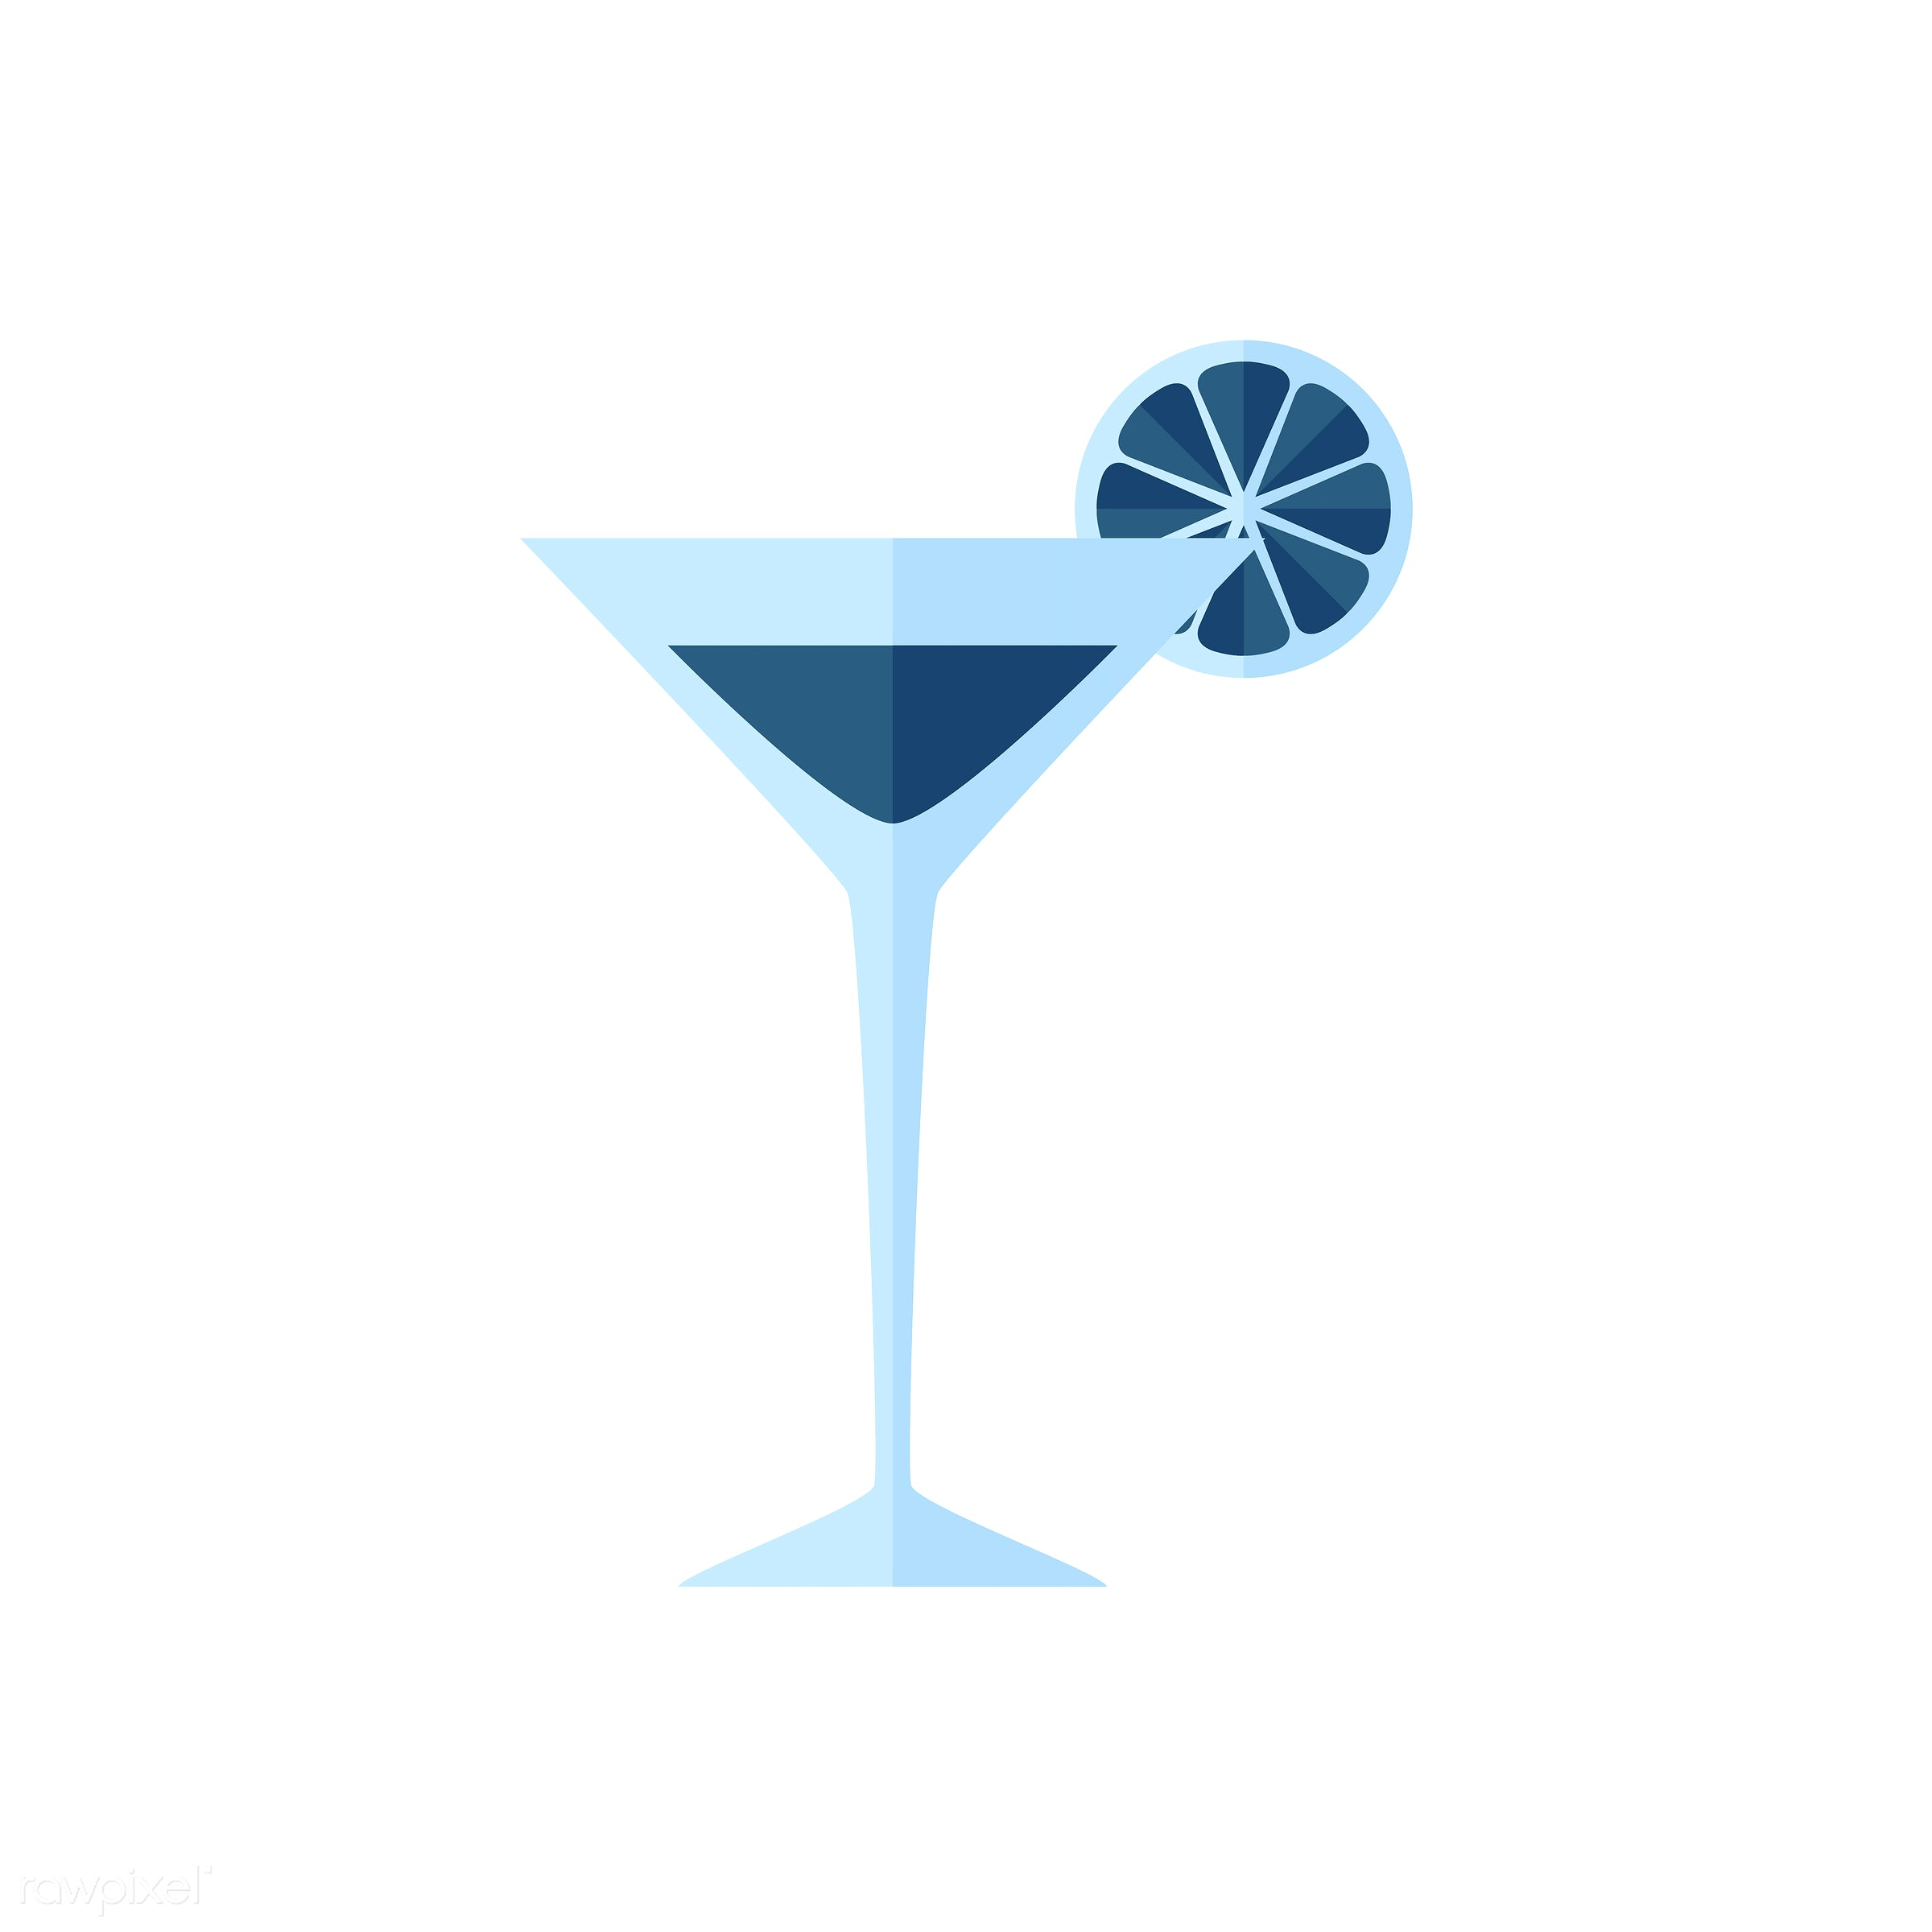 vector, graphic, illustration, icon, symbol, colorful, cute, cocktail, mocktail, blue, drink, beverage, water